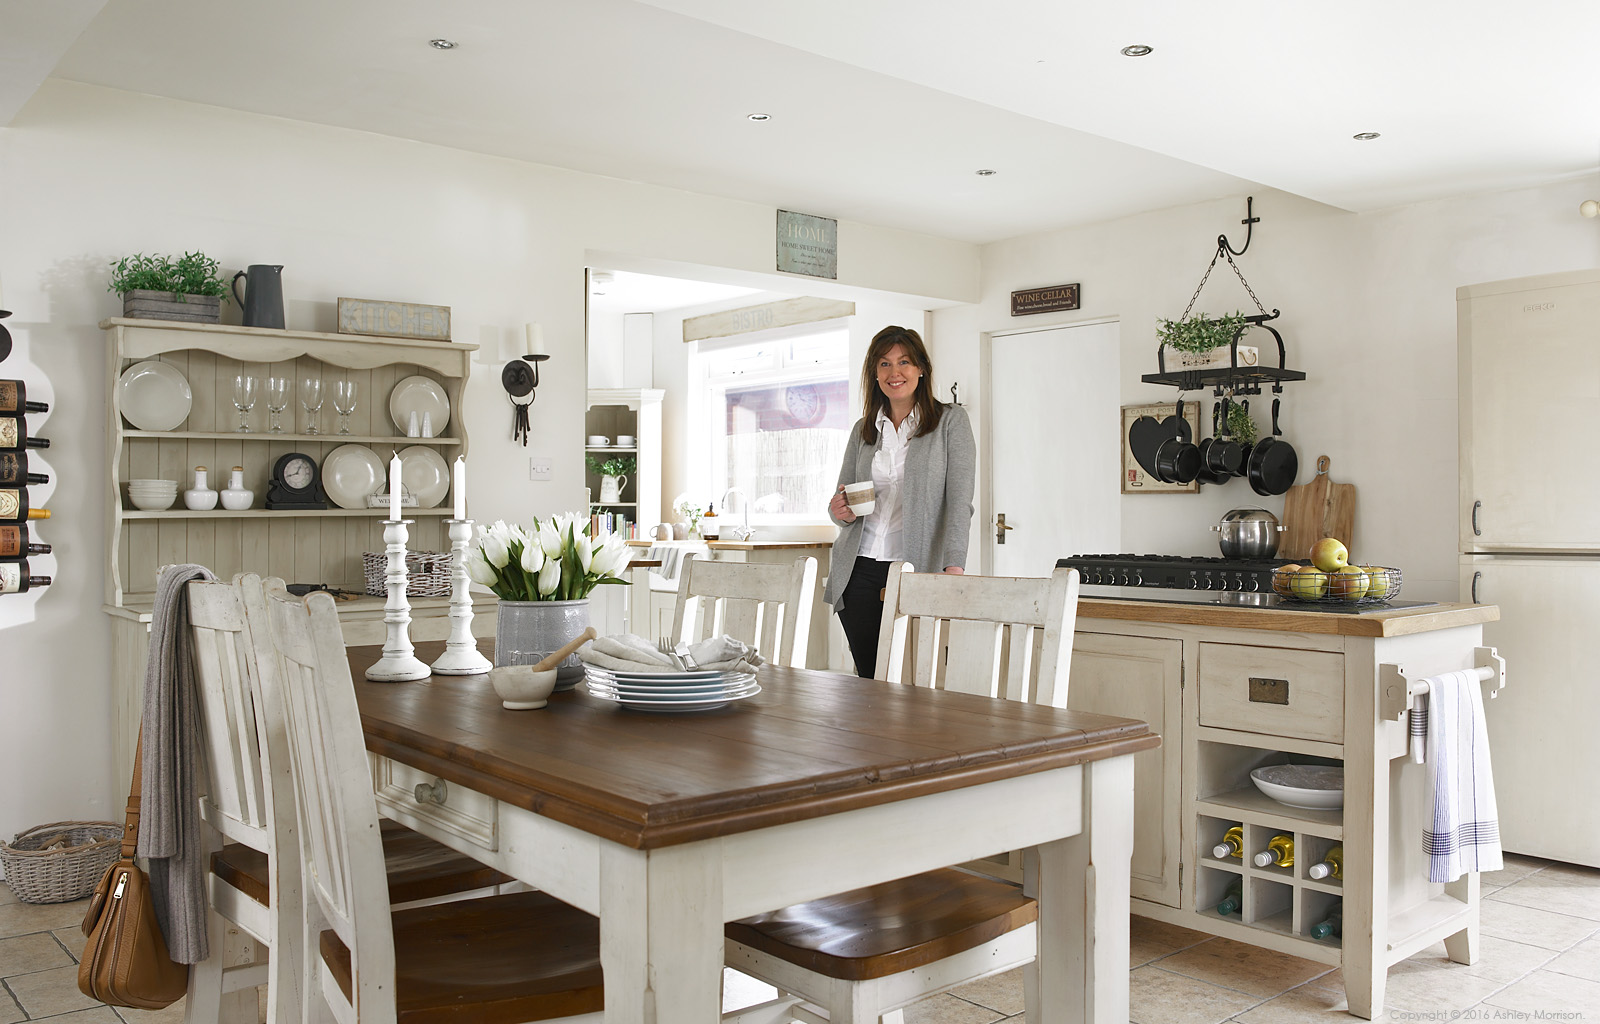 Jillian Donaldson in the kitchen of her 1950's detached house in Belfast.